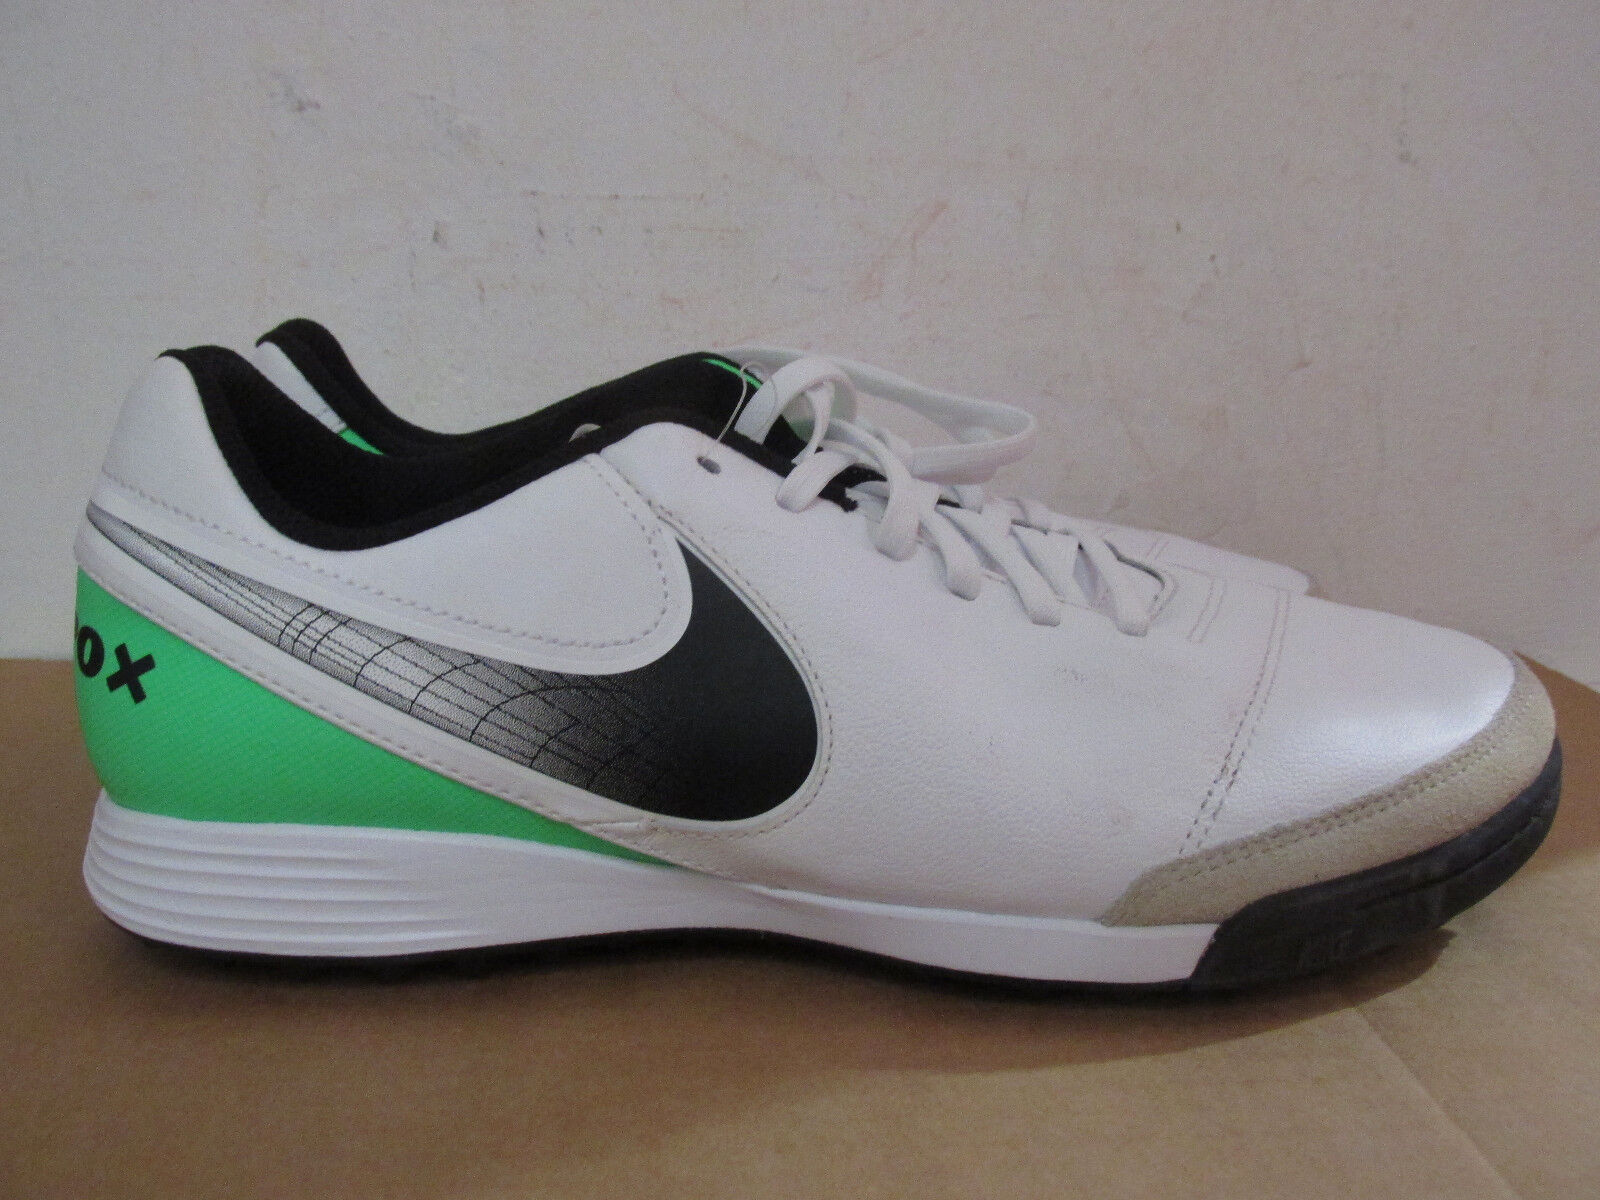 Nike TiempoX Genio II Leather TF Trainers 819216 103 football boots SAMPLE The latest discount shoes for men and women